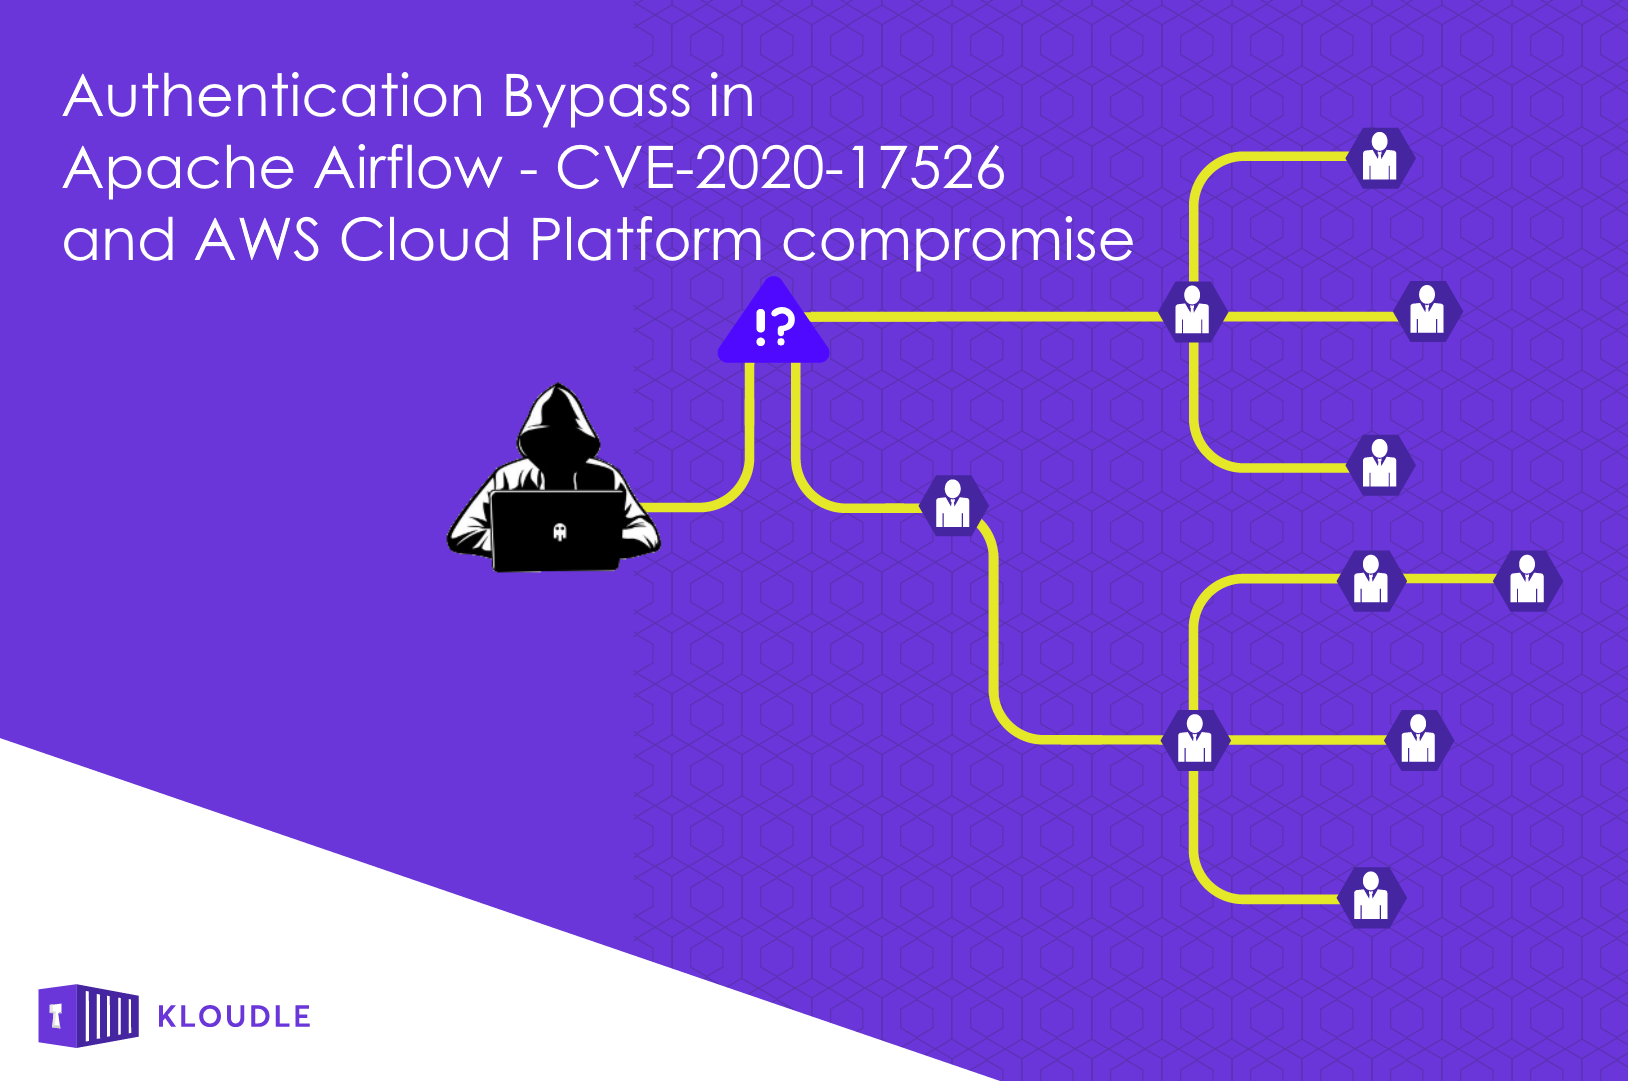 Authentication Bypass in Apache Airflow - CVE-2020-17526 and AWS Cloud Platform compromise